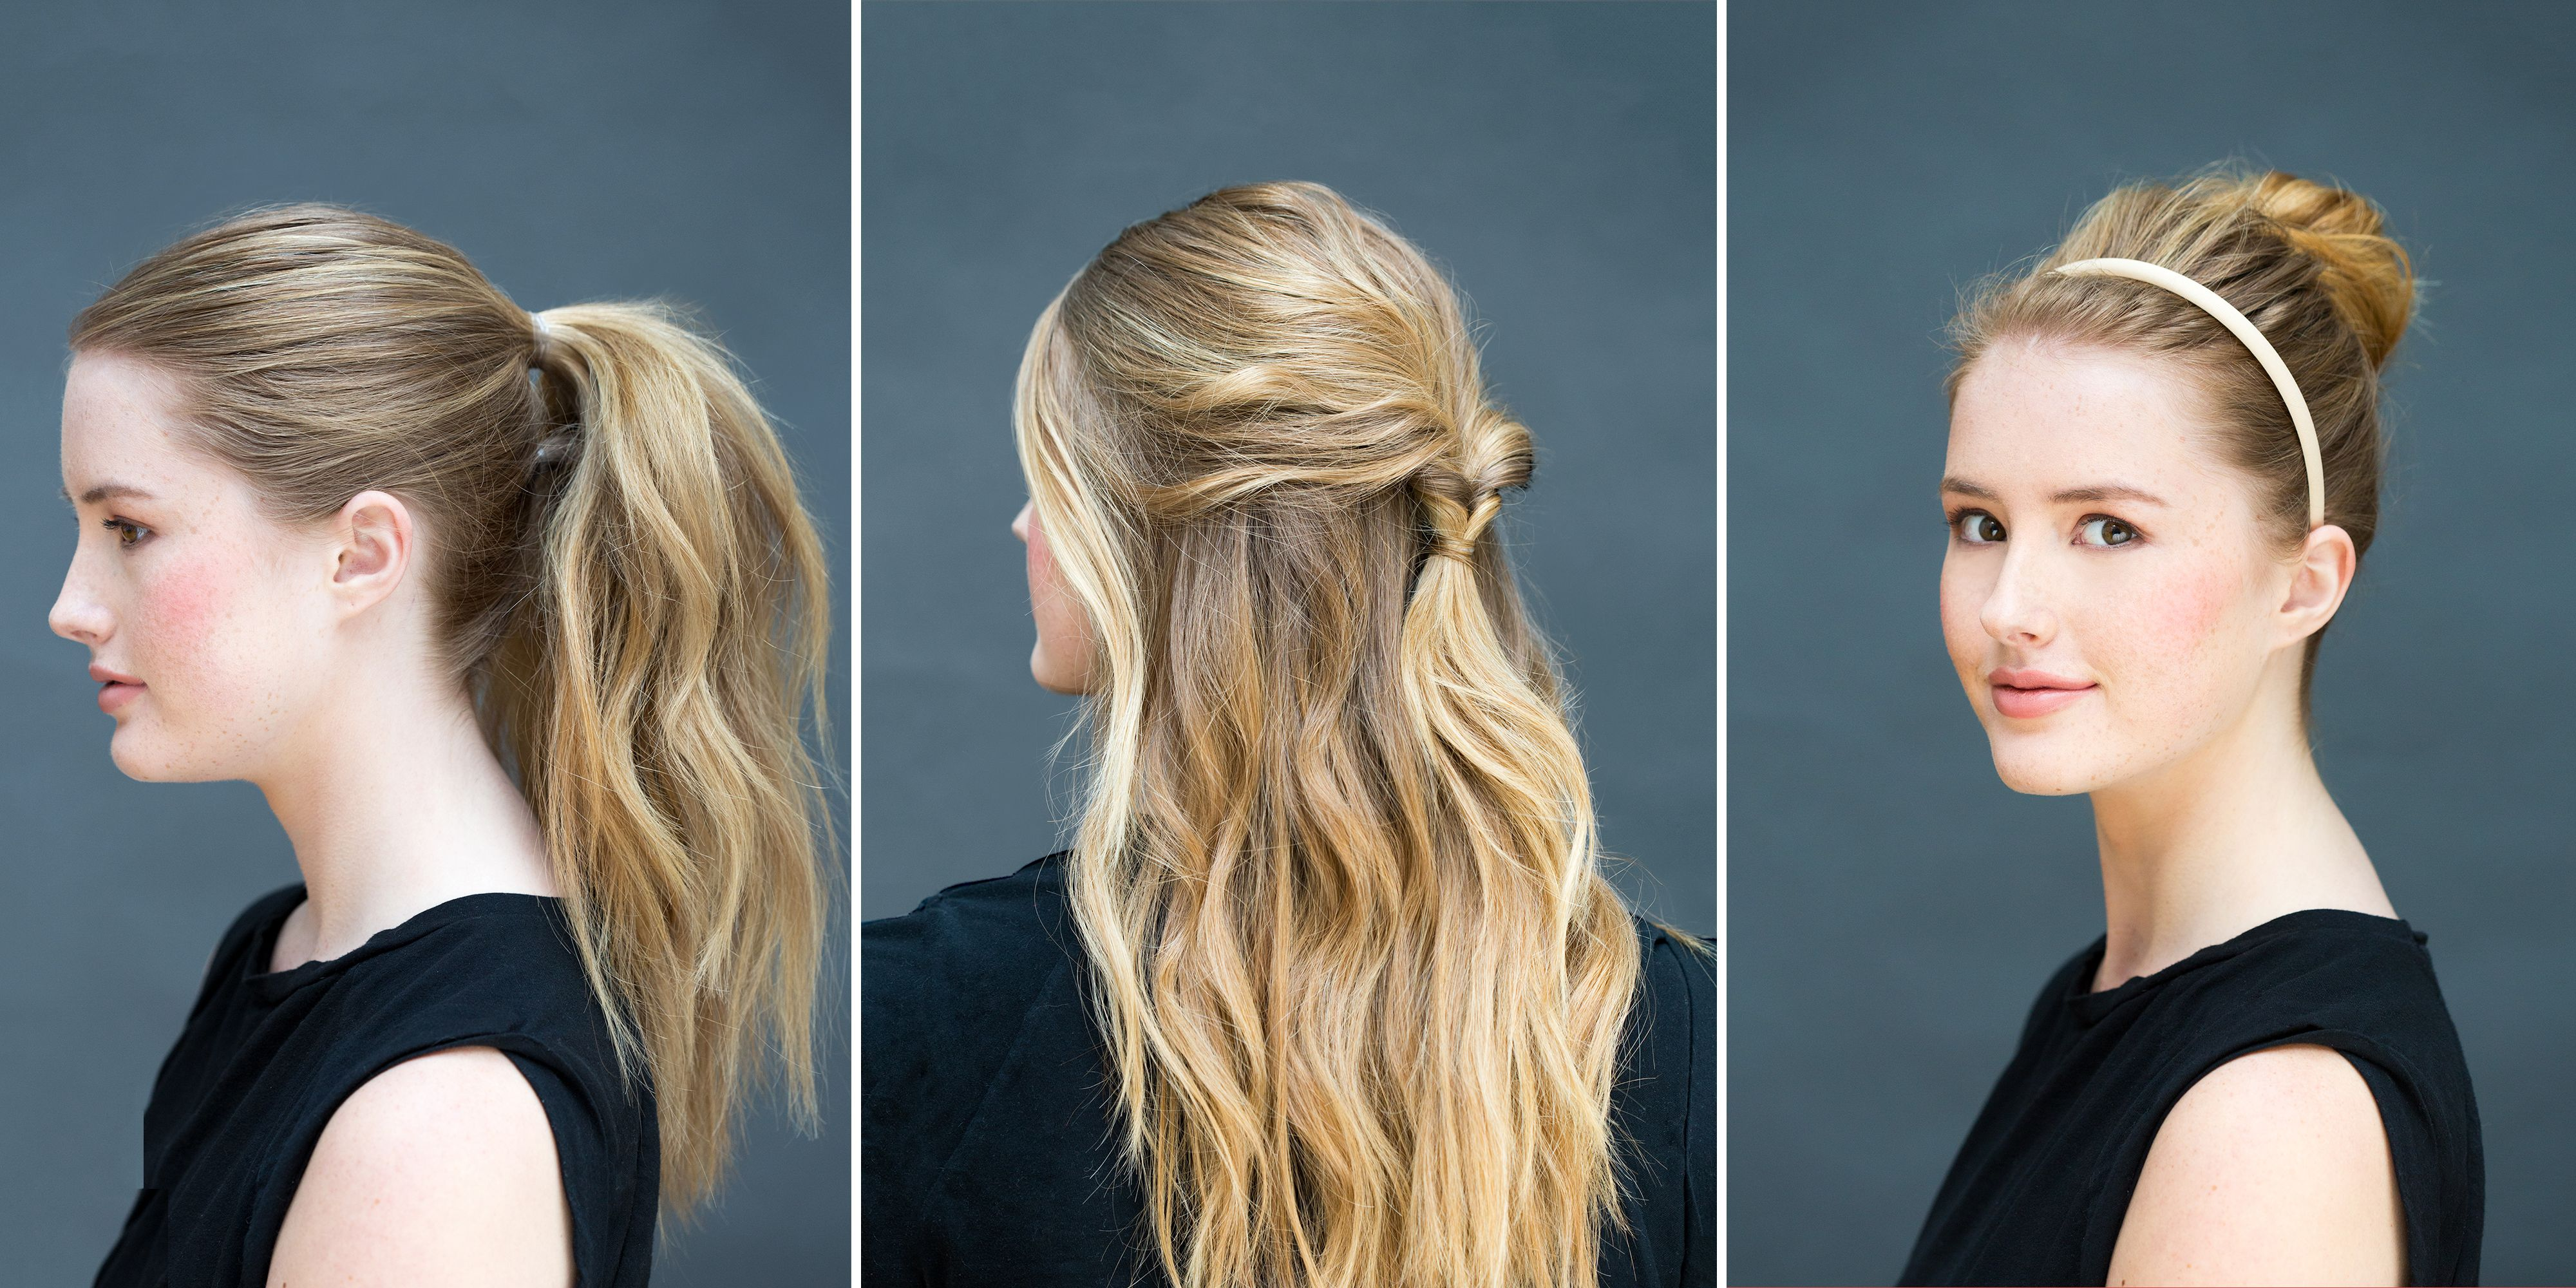 10 Easy Hairstyles You Can Do